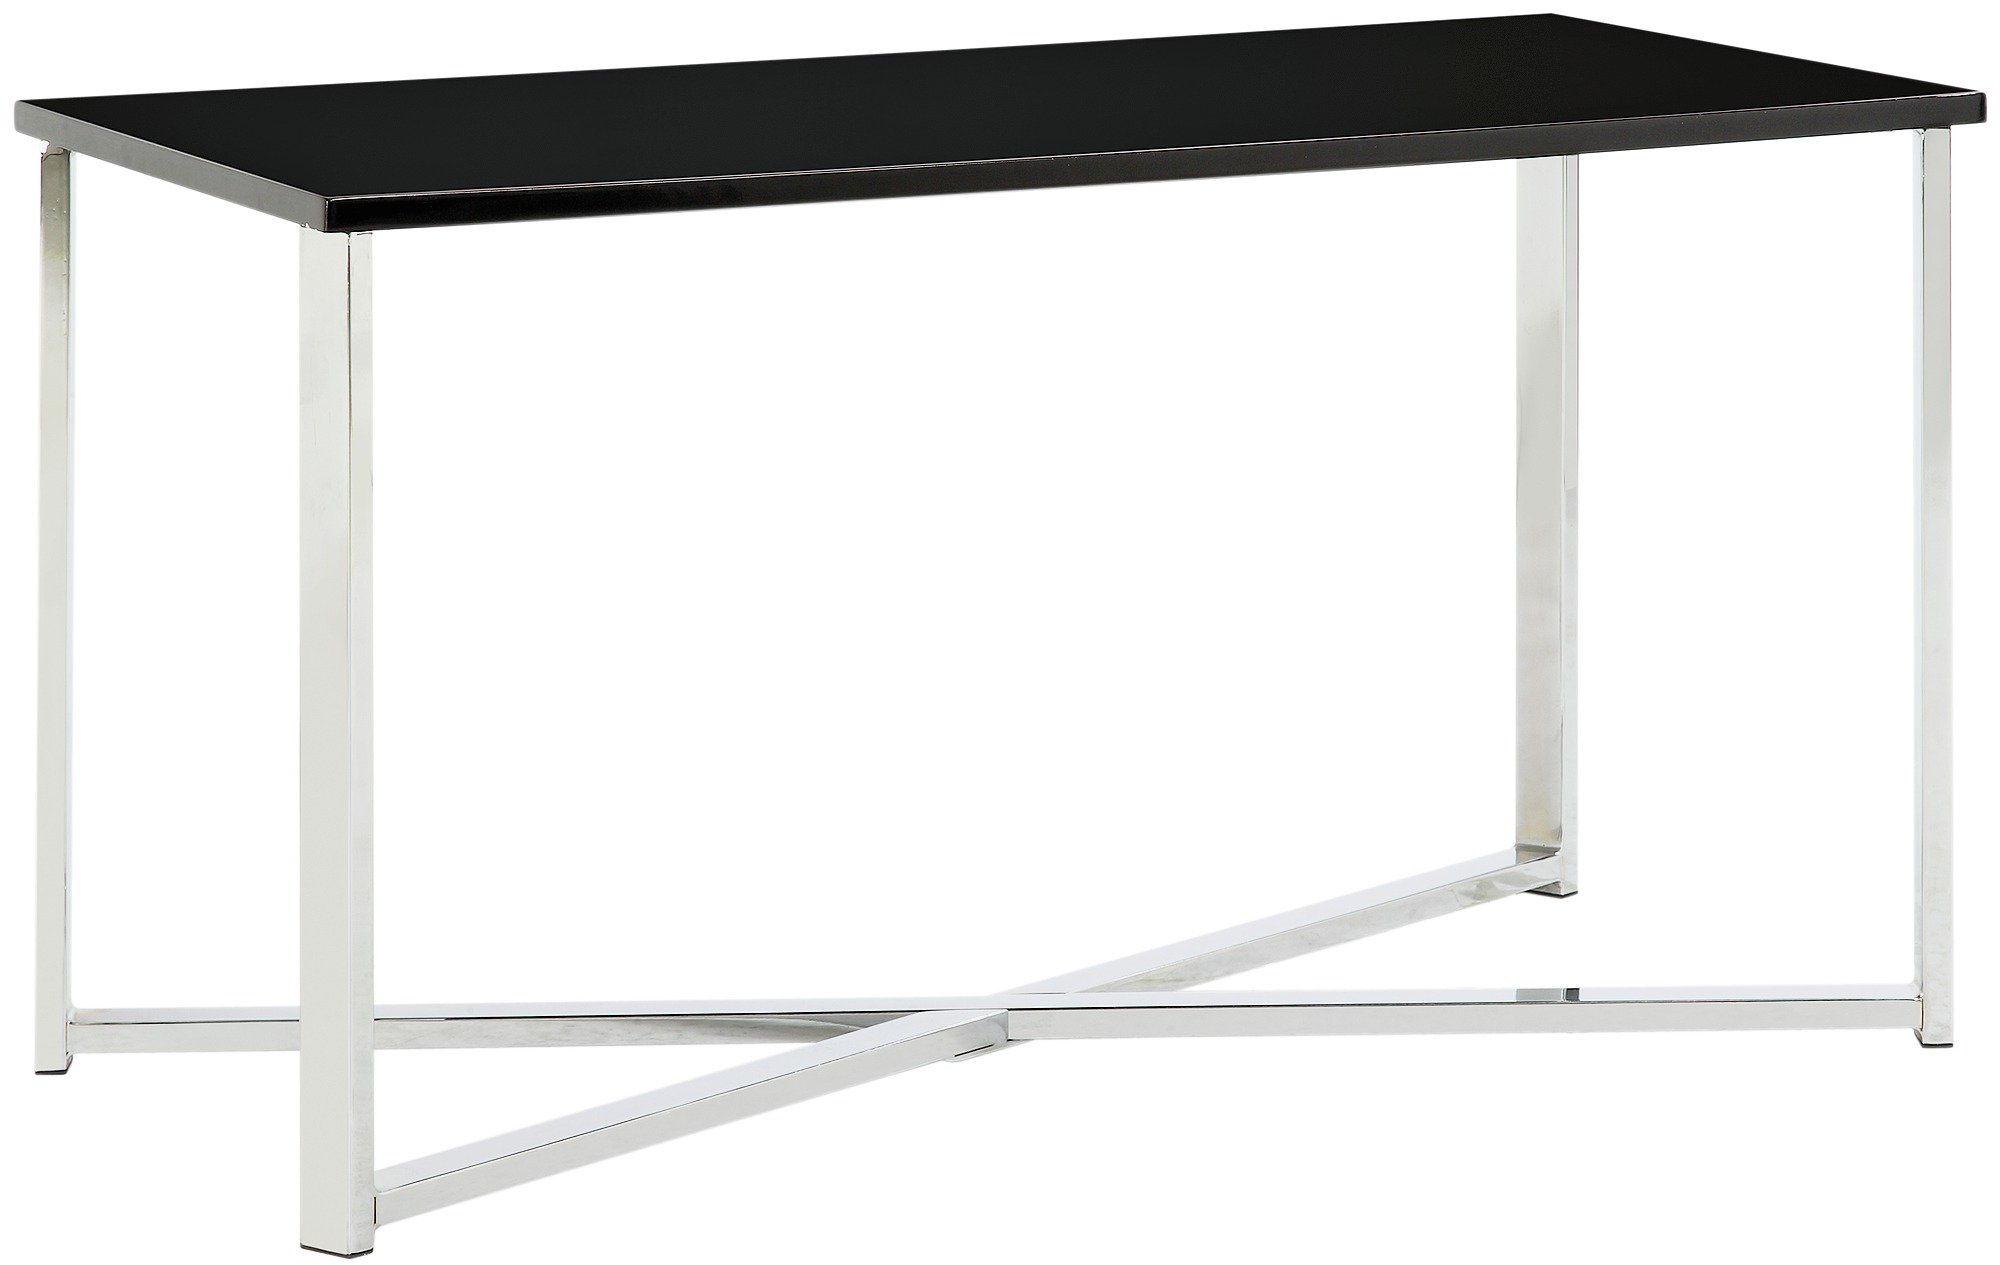 Image of Hygena - Fitz - Coffee Table - Black